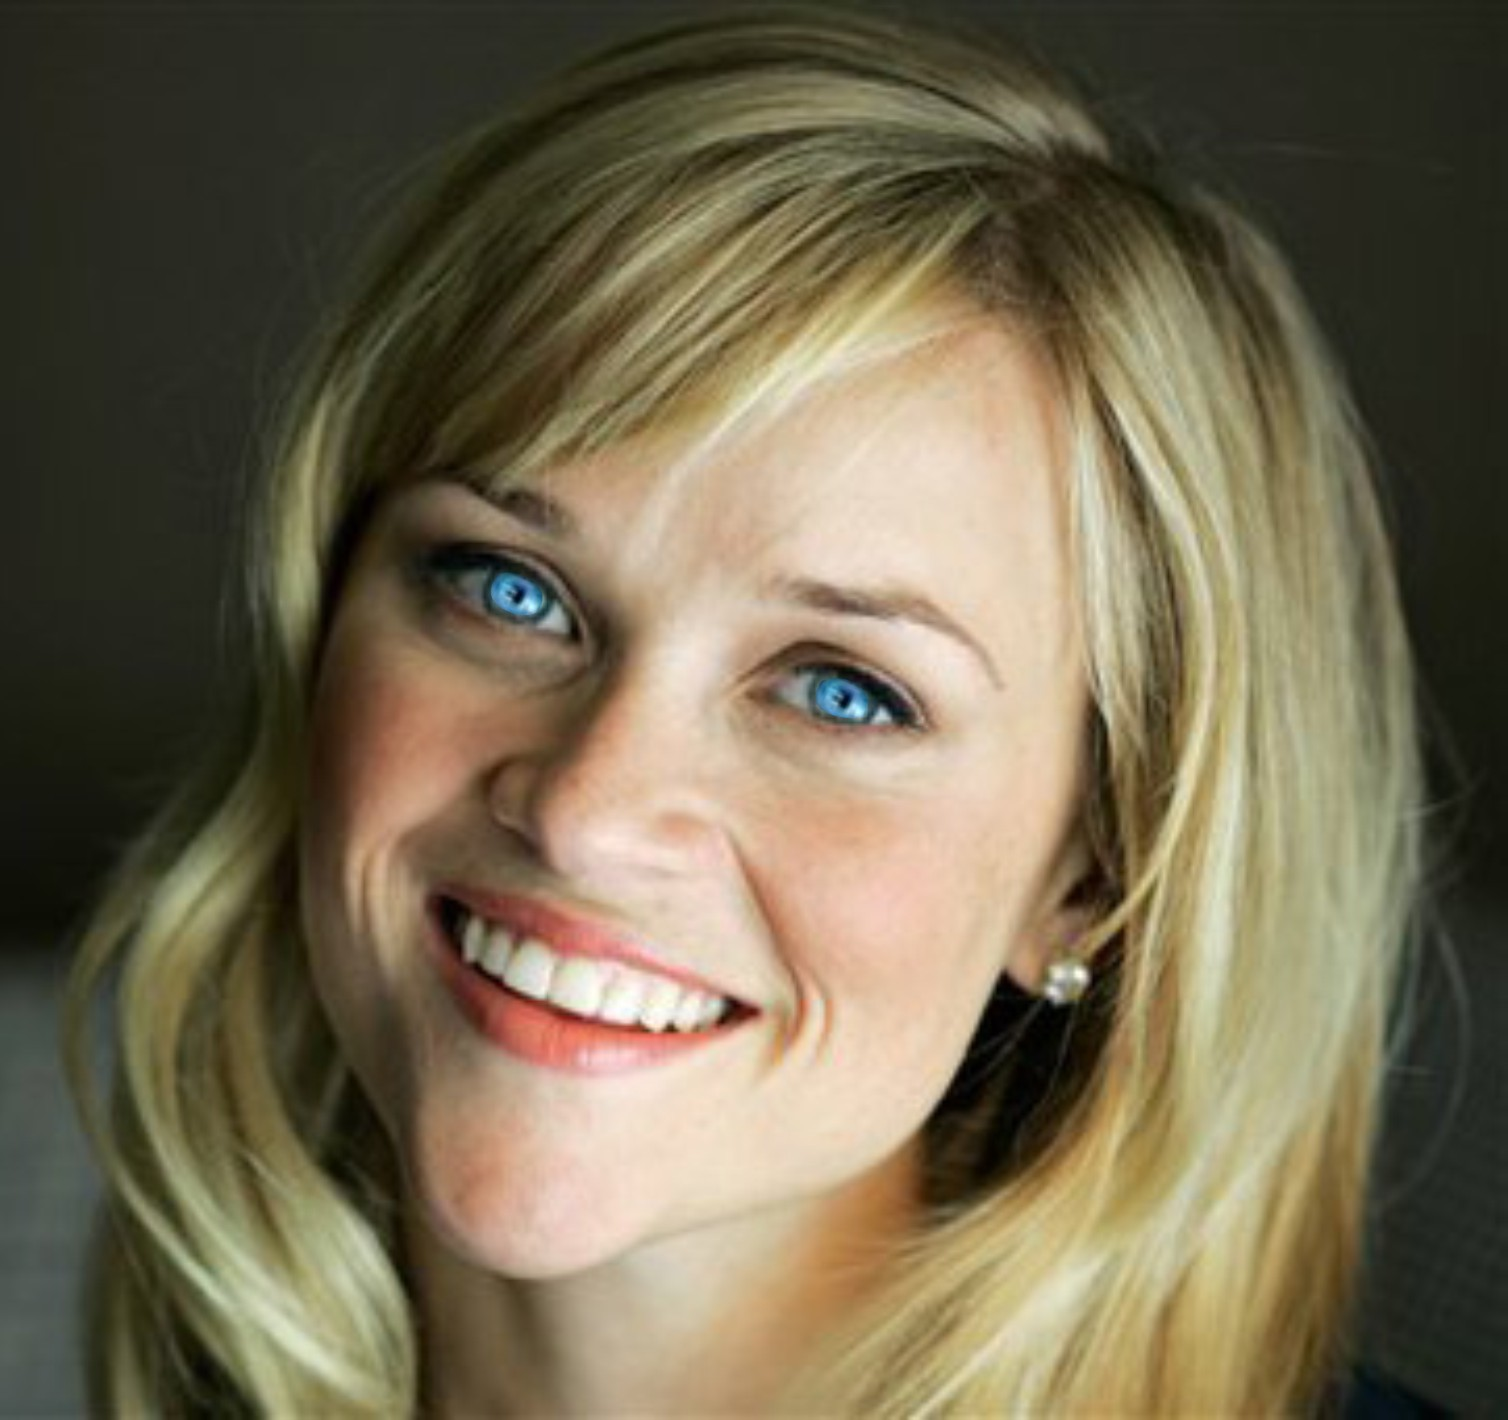 http://4.bp.blogspot.com/-Y7S_xuovbSA/UNe8x0EfaVI/AAAAAAAAE9o/P3P3Gj5qQww/s1600/Reese_Witherspoon.jpg